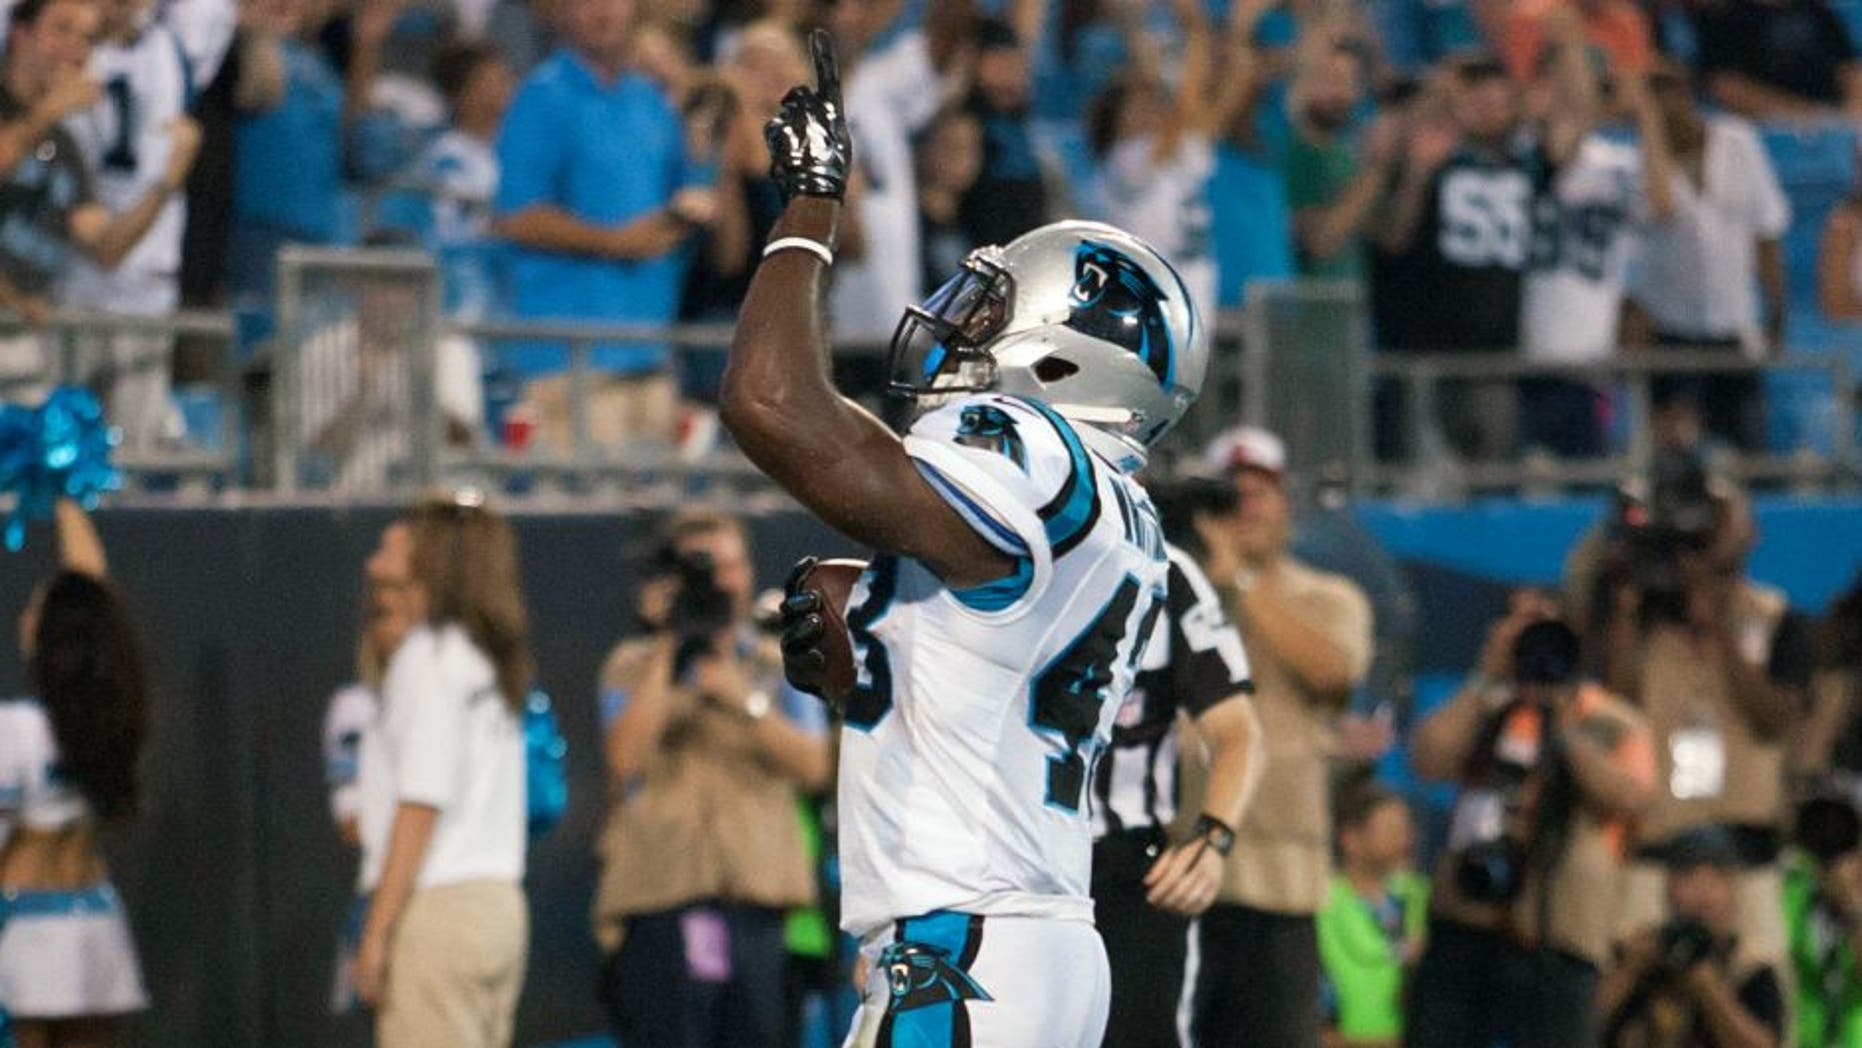 Aug 17, 2014; Charlotte, NC, USA; Carolina Panthers running back Fozzy Whittaker (43) celebrates after scoring a touchdown during the third quarter against the Kansas City Chiefs at Bank of America Stadium. Mandatory Credit: Jeremy Brevard-USA TODAY Sports